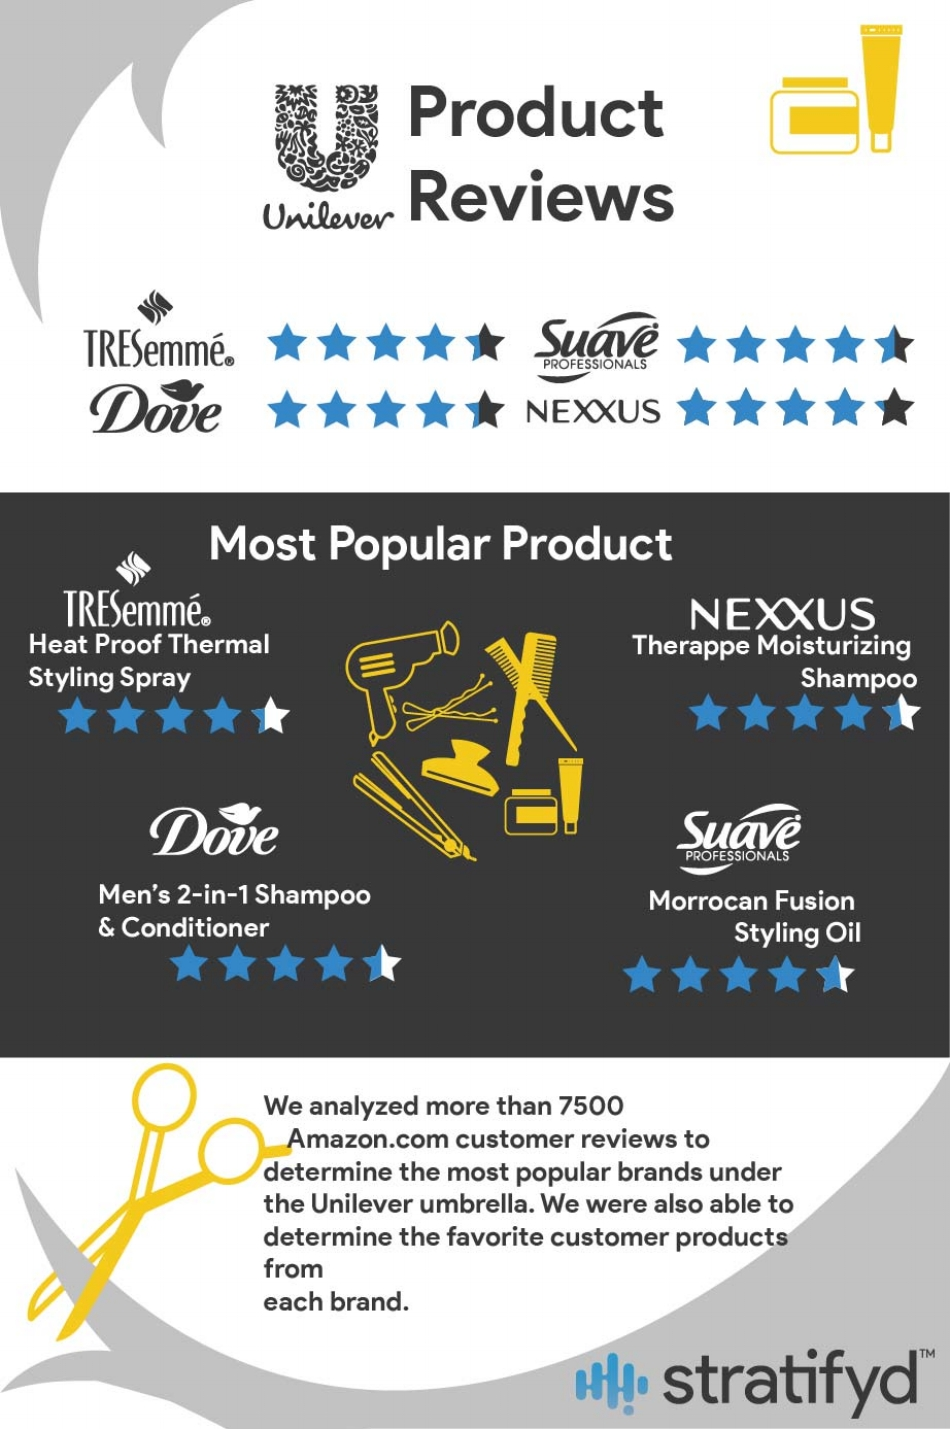 unilever-customer-experience-analytics-from-stratifyd-image-2.png